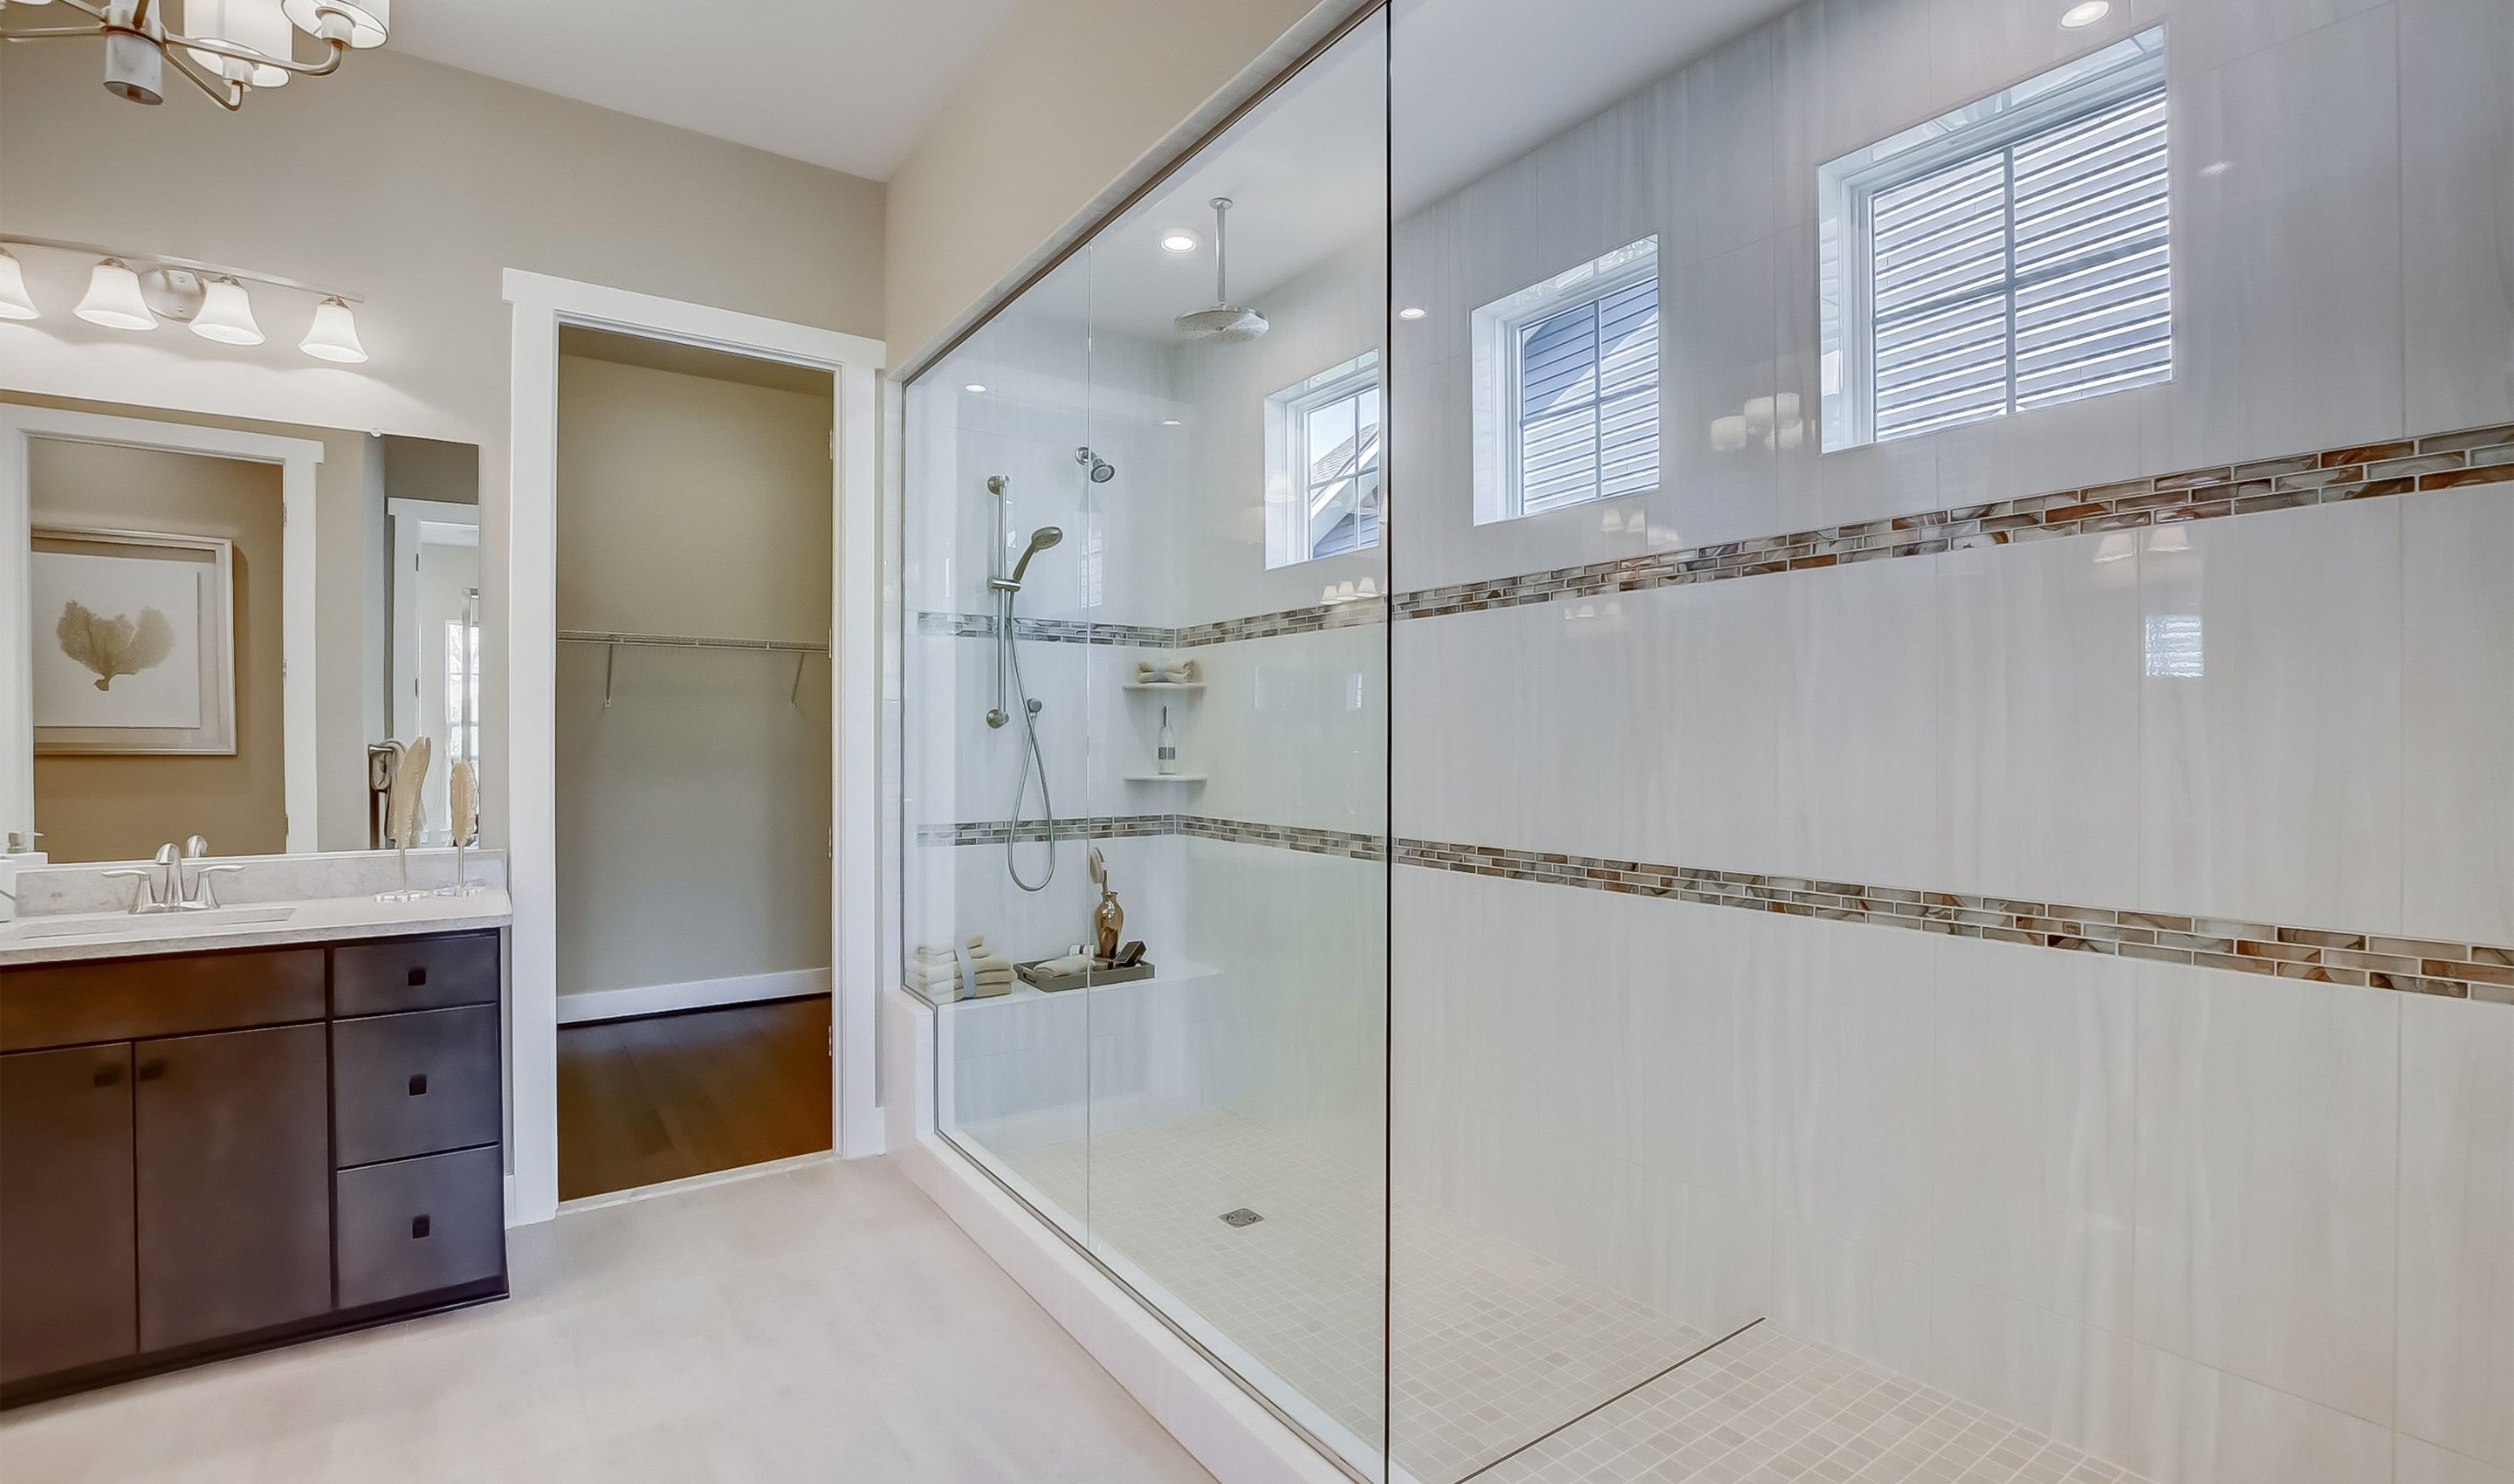 Bathroom featured in the San Sebastian By K. Hovnanian's® Four Seasons in Eastern Shore, MD